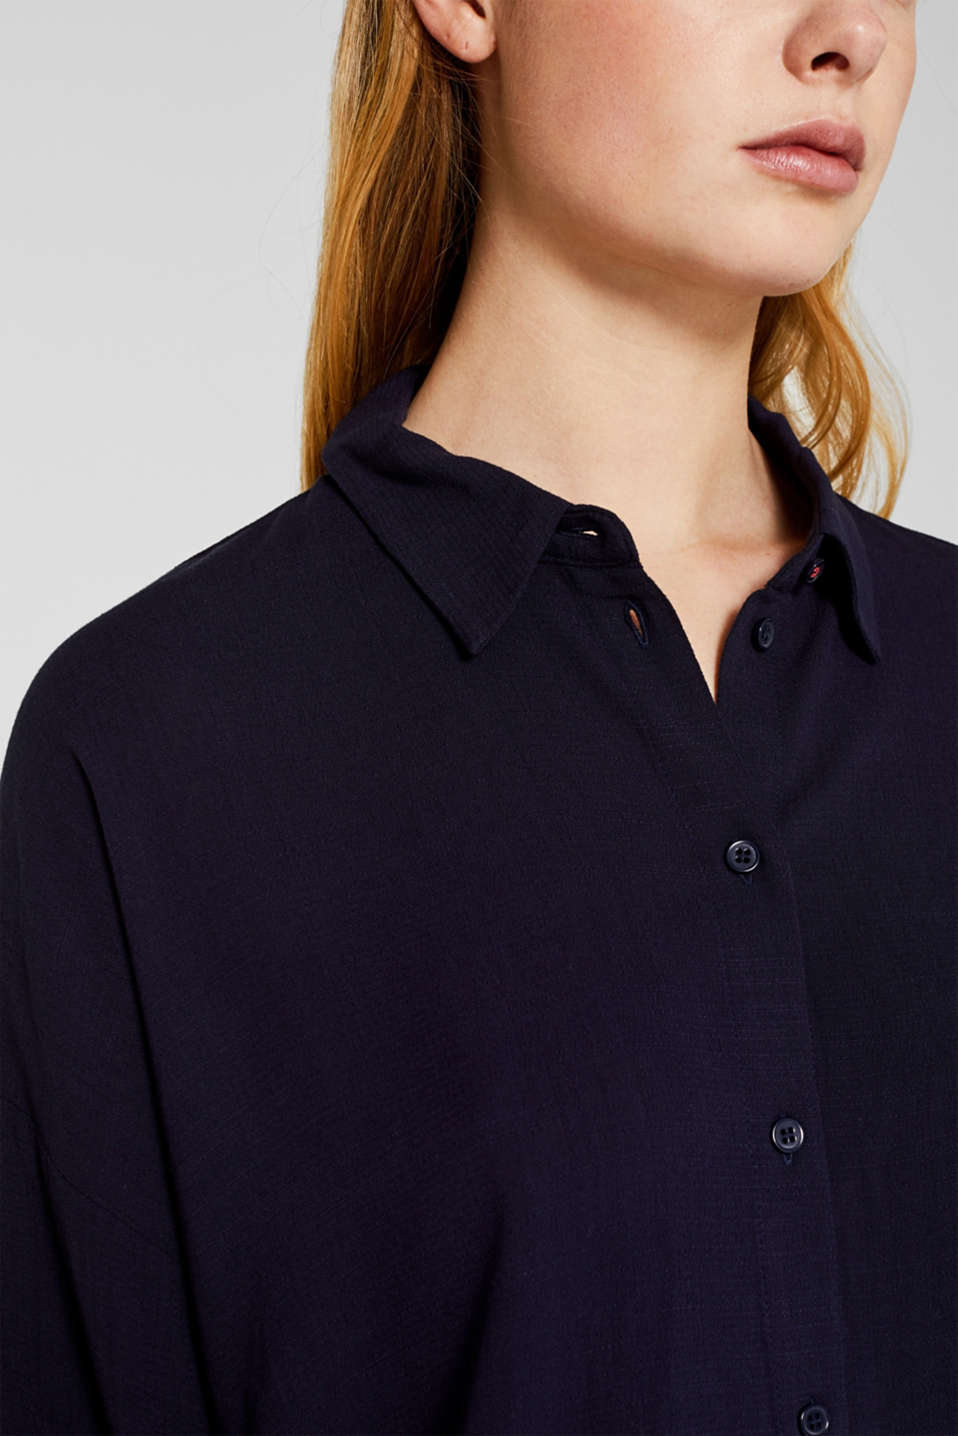 Blouses woven, NAVY, detail image number 2